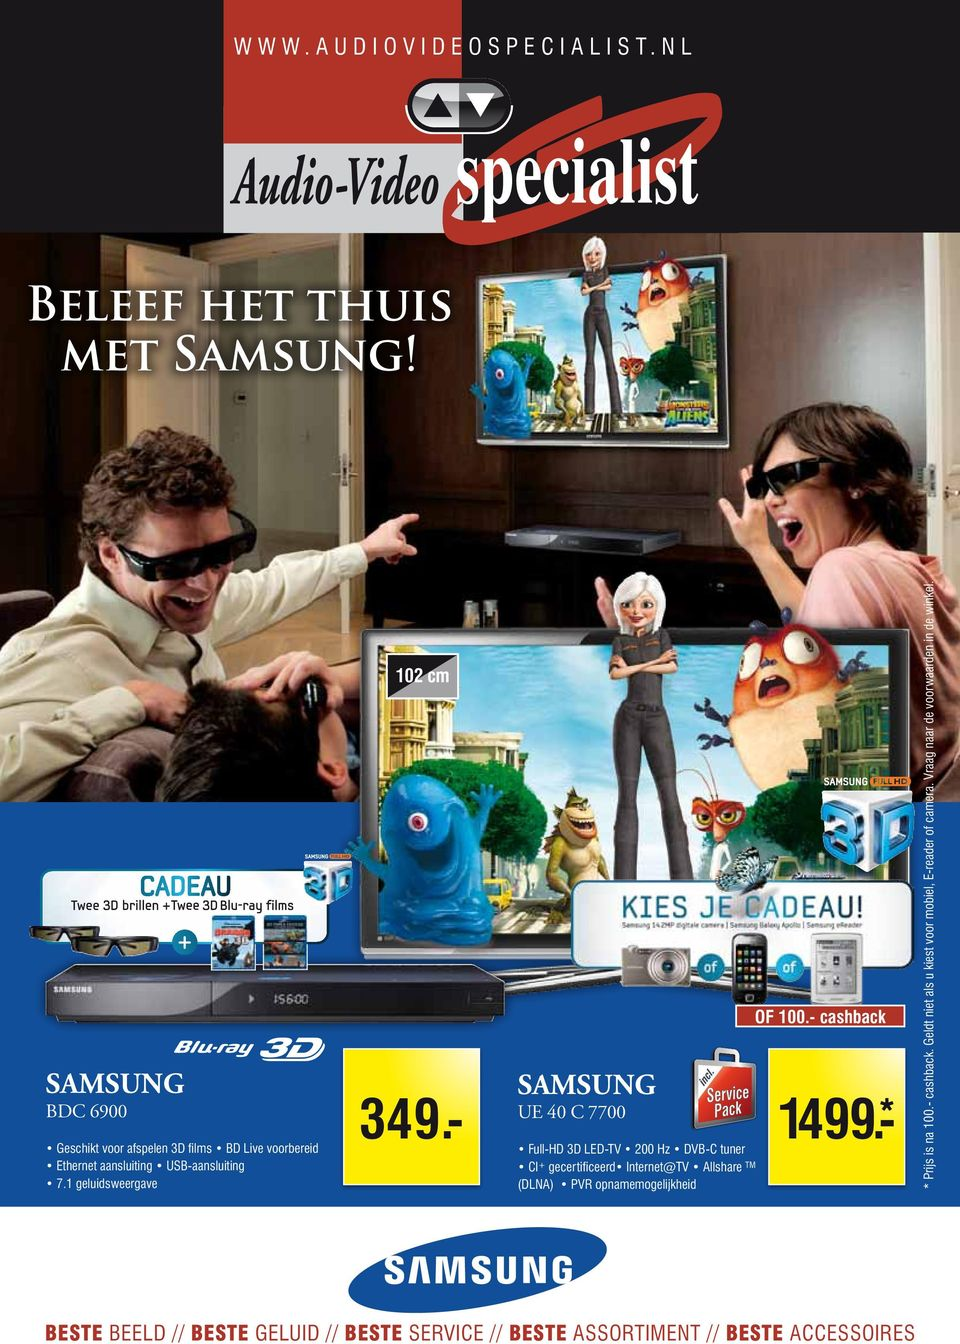 - Samsung UE 40 C 7700 Full-HD 3D LED-TV 200 Hz DVB-C tuner CI + gecertificeerd Internet@TV Allshare TM (DLNA) PVR opnamemogelijkheid OF 100.